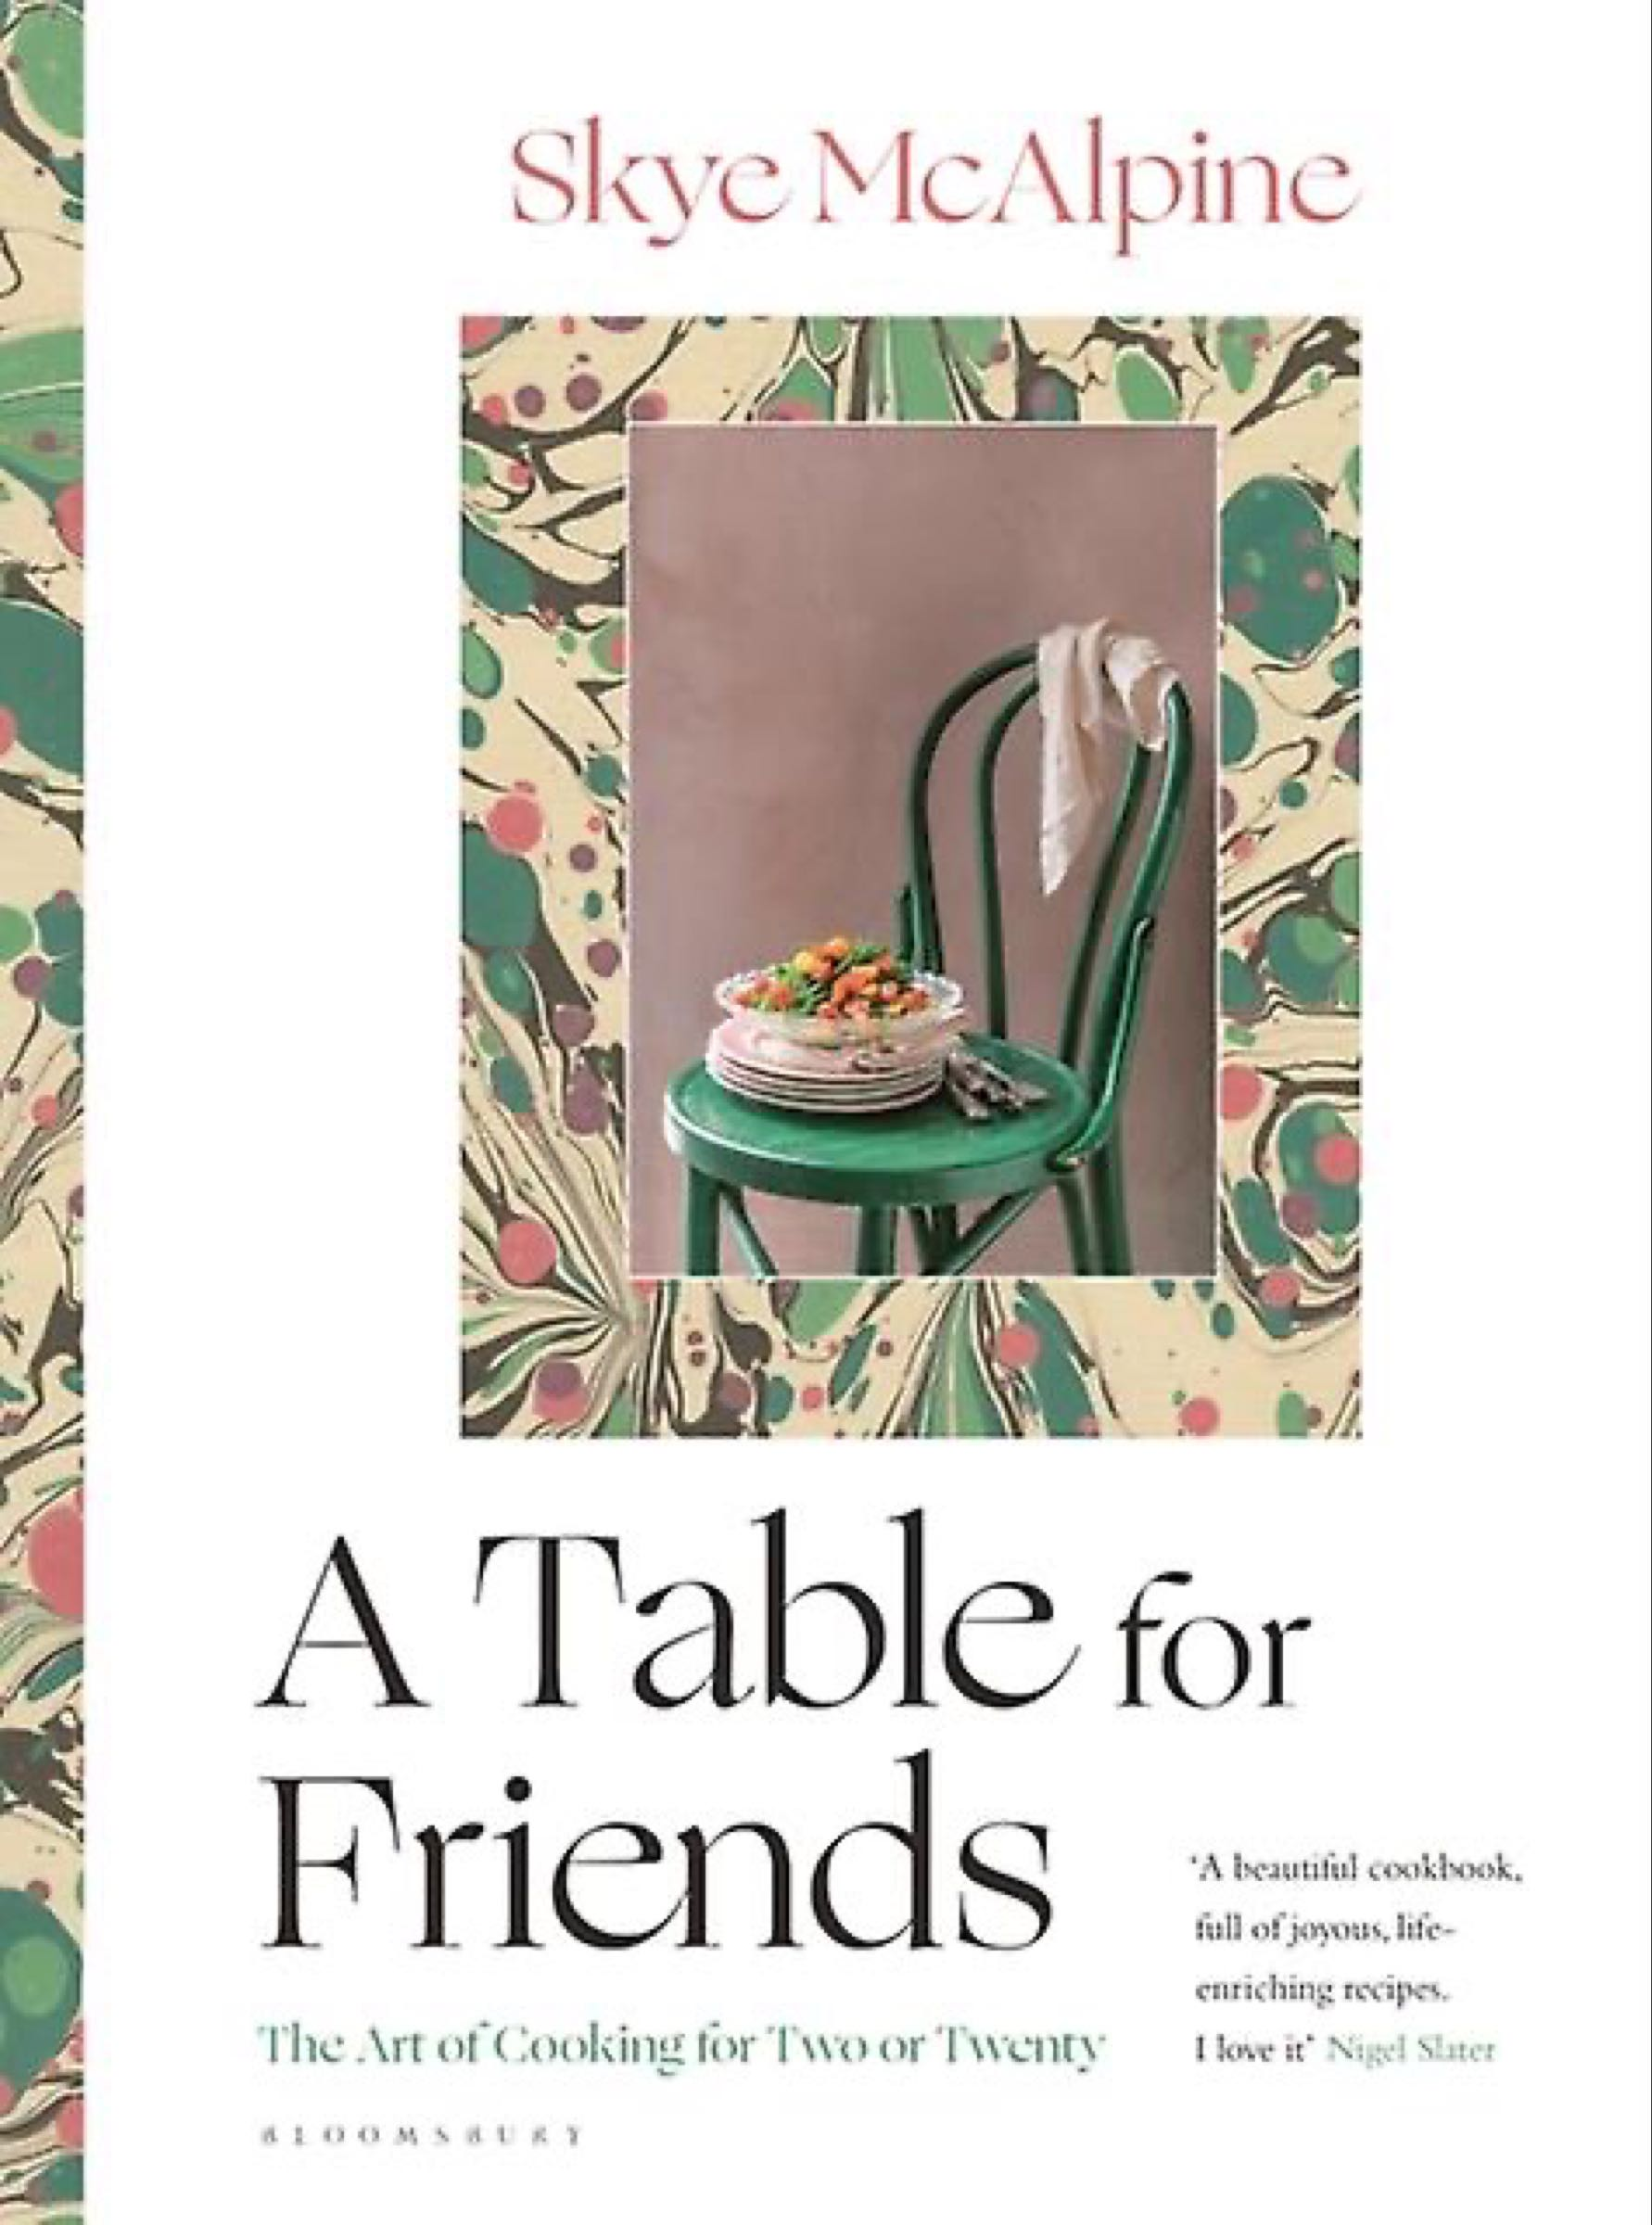 Skye McAlpine -  A table for friends